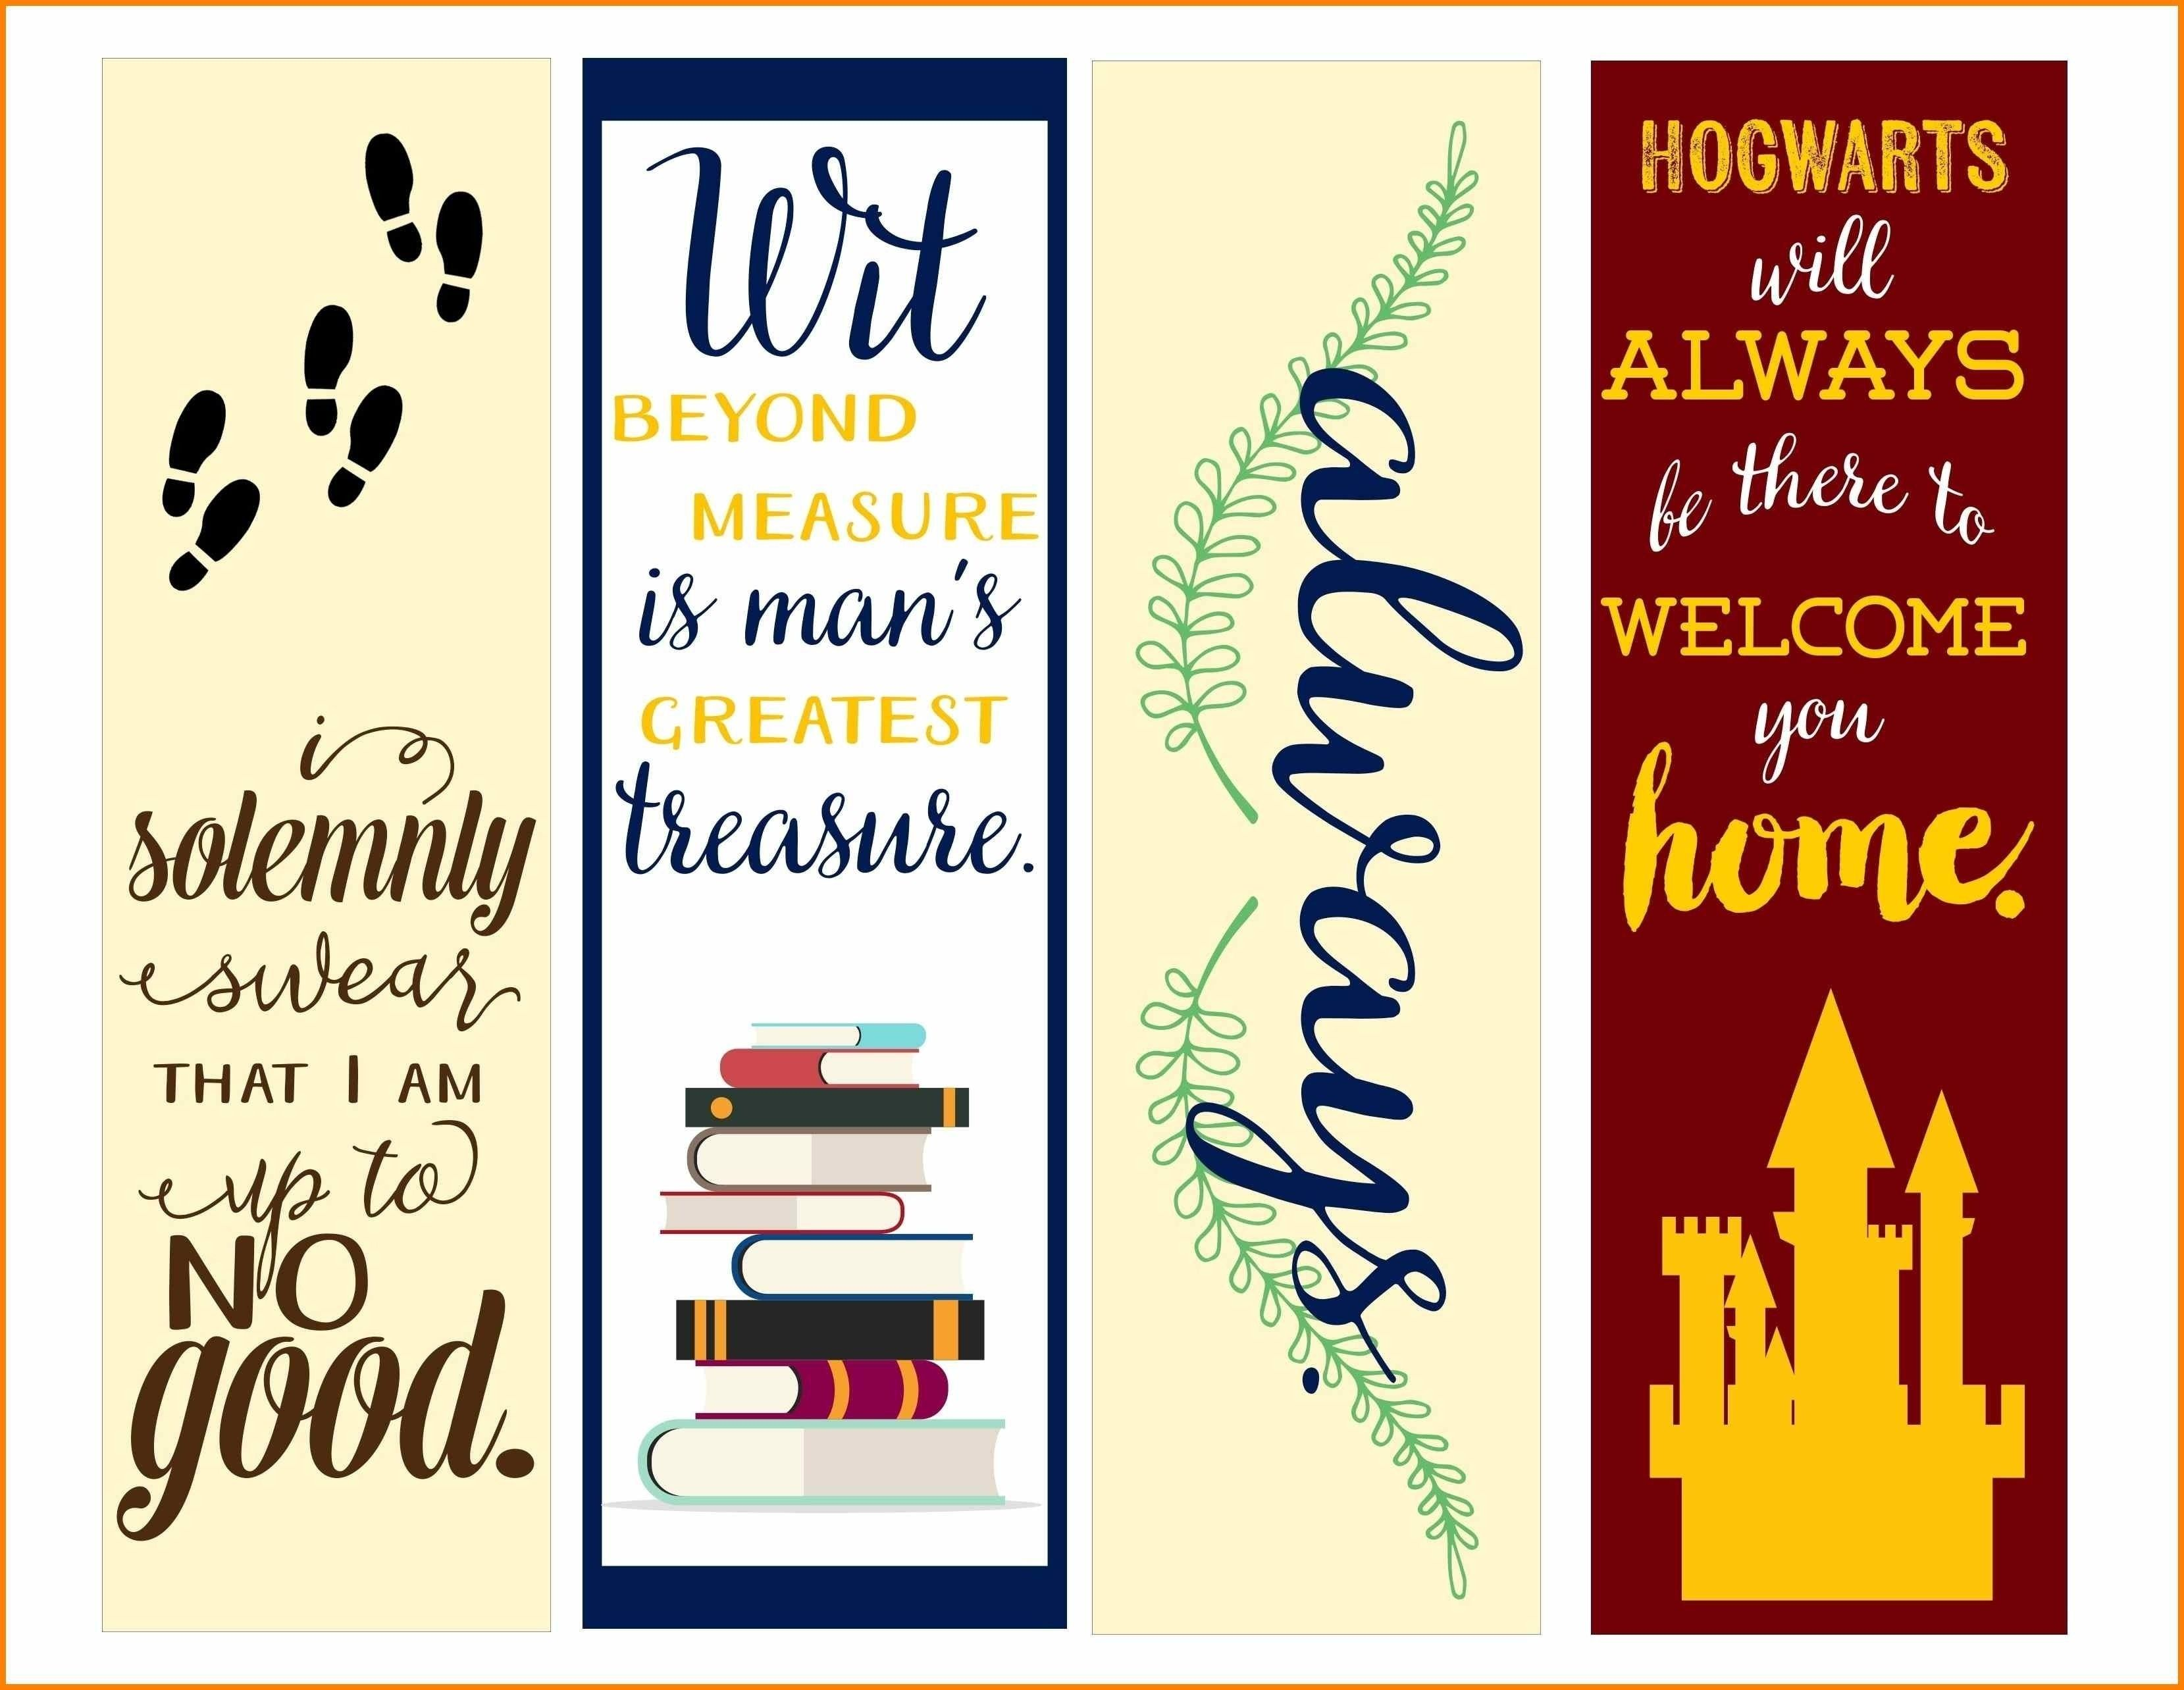 image regarding Harry Potter Printable Bookmark titled Harry Potter Bookmarks! Potterish Arts! within just 2019 Harry